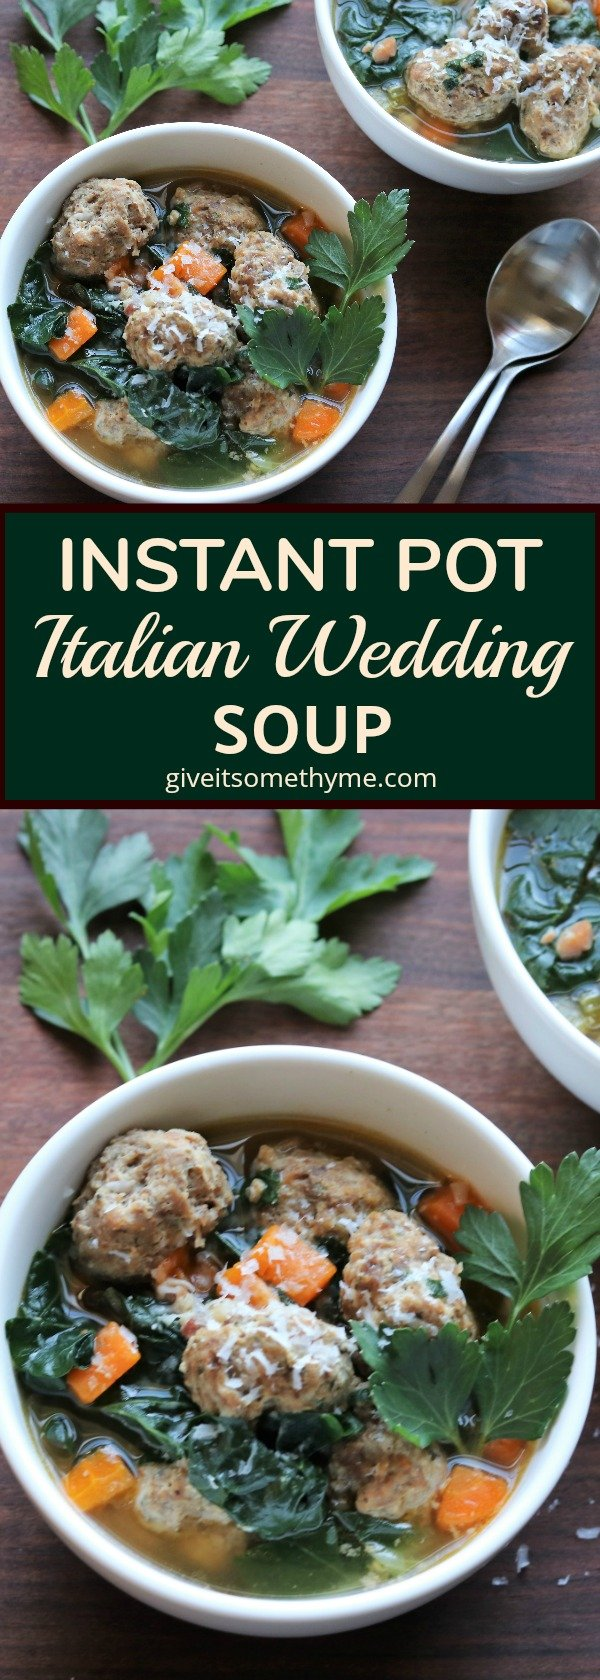 Instant Pot Italian Wedding Soup | Give it Some Thyme